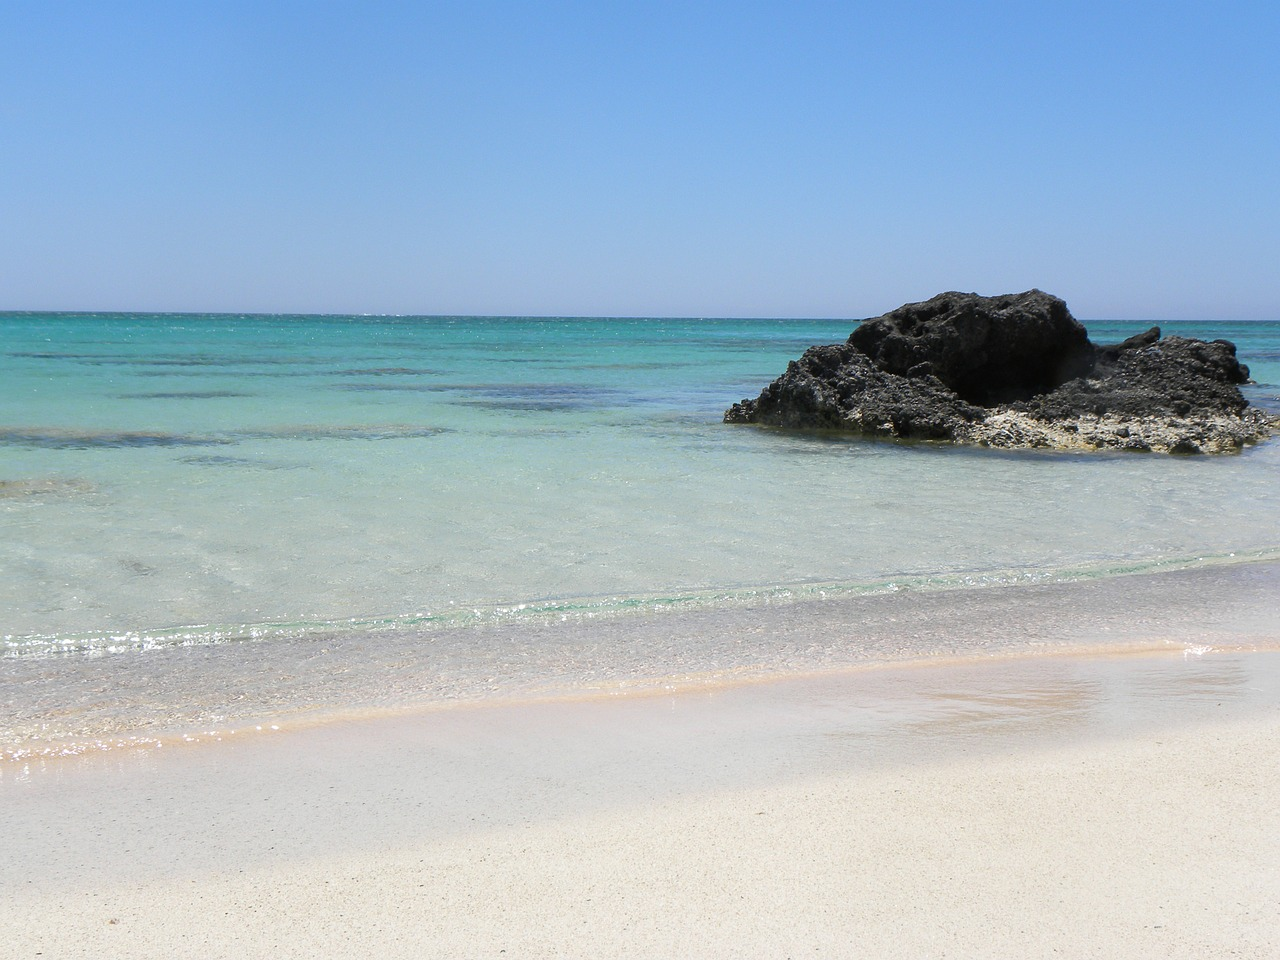 Sterne Hotel Griechenland All Inclusive